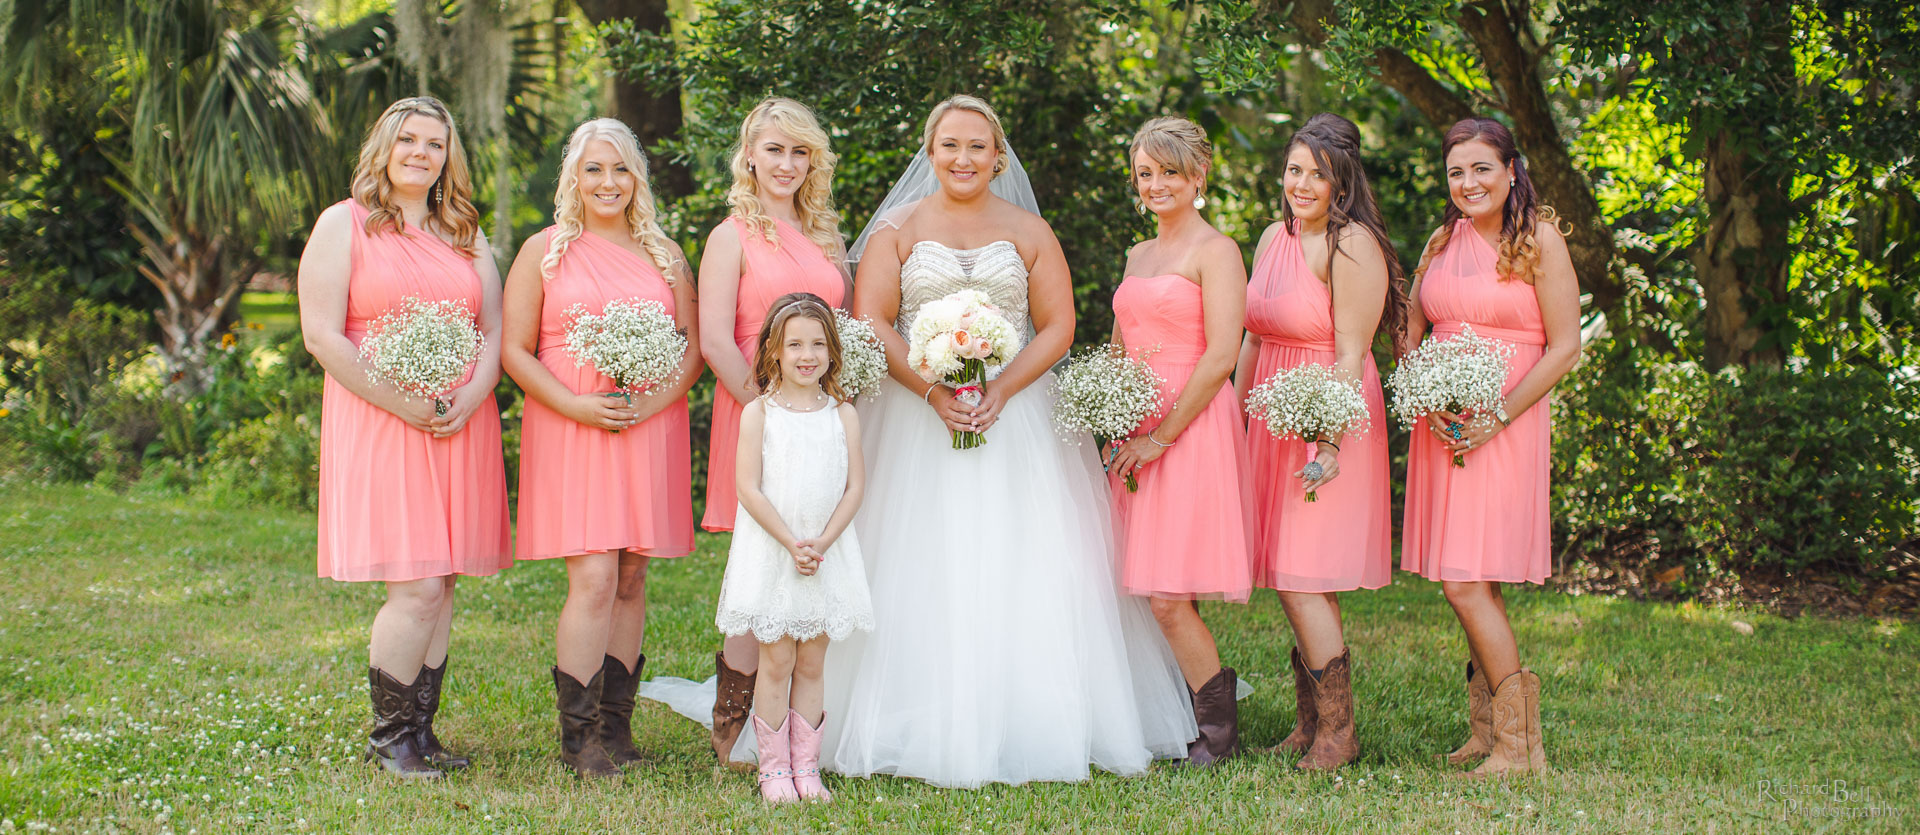 Brandy and her bridesmaids